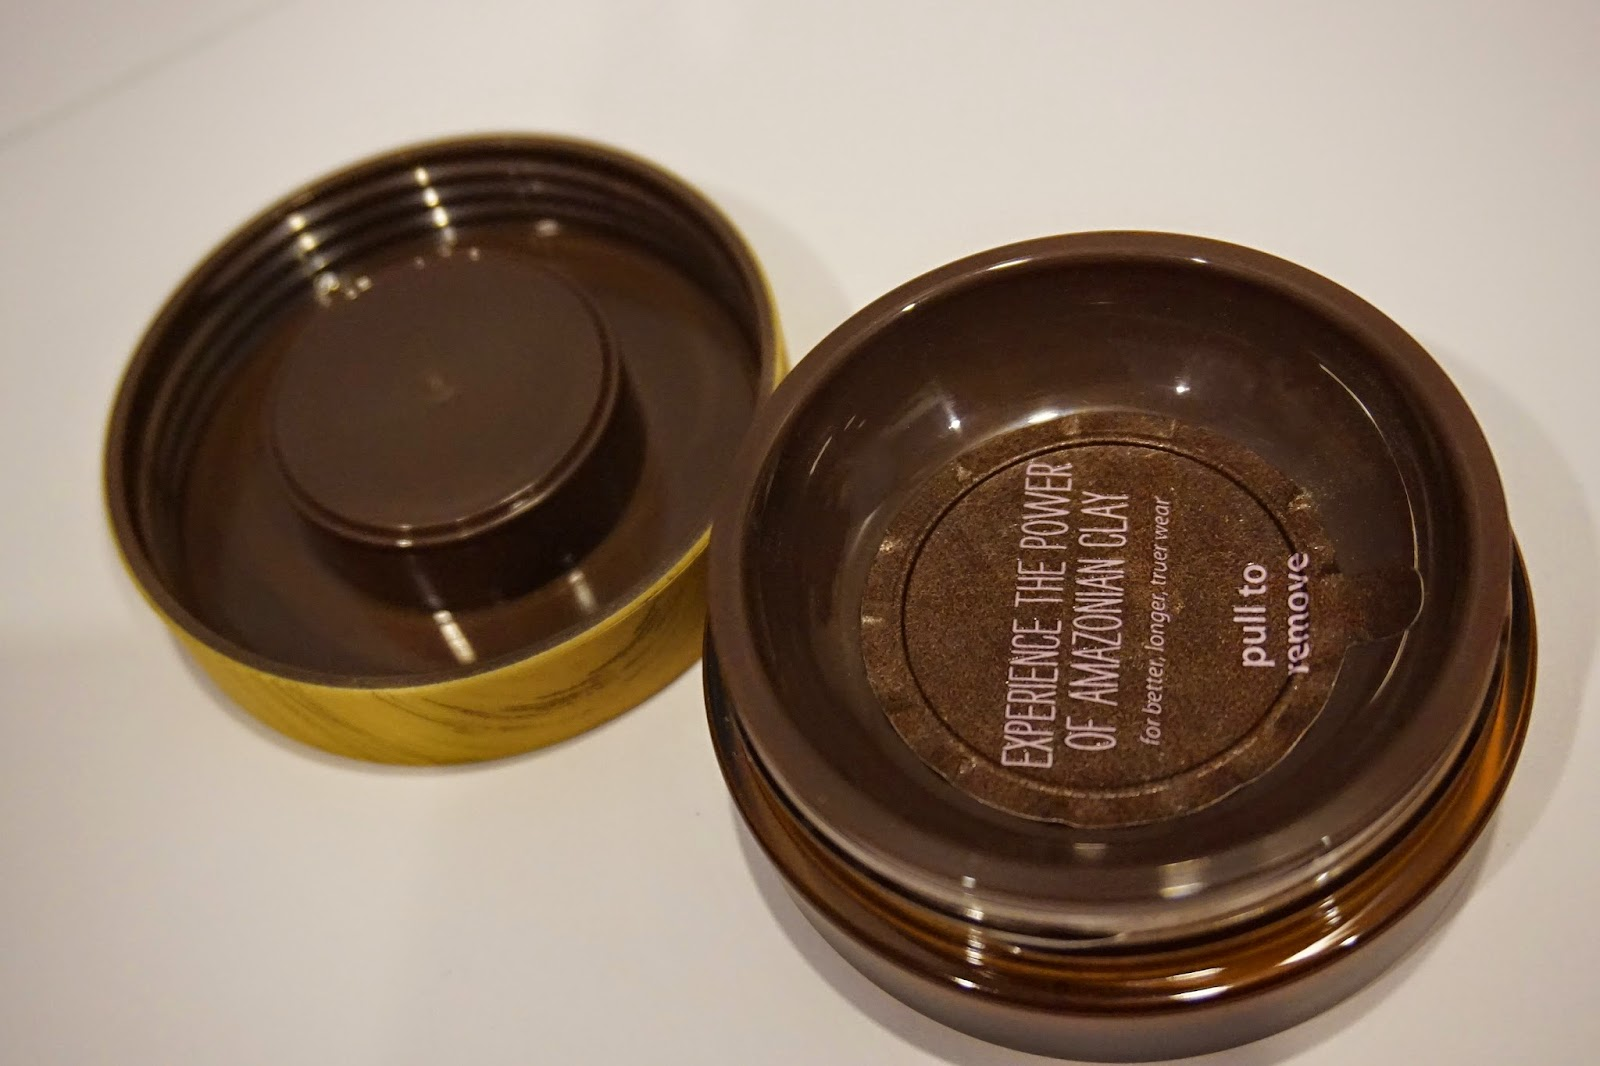 Sephora Haul and mini reviews - Tarte Amazonian Clay Full Coverage airbrush foundation - Dusty Foxes Beauty Blog